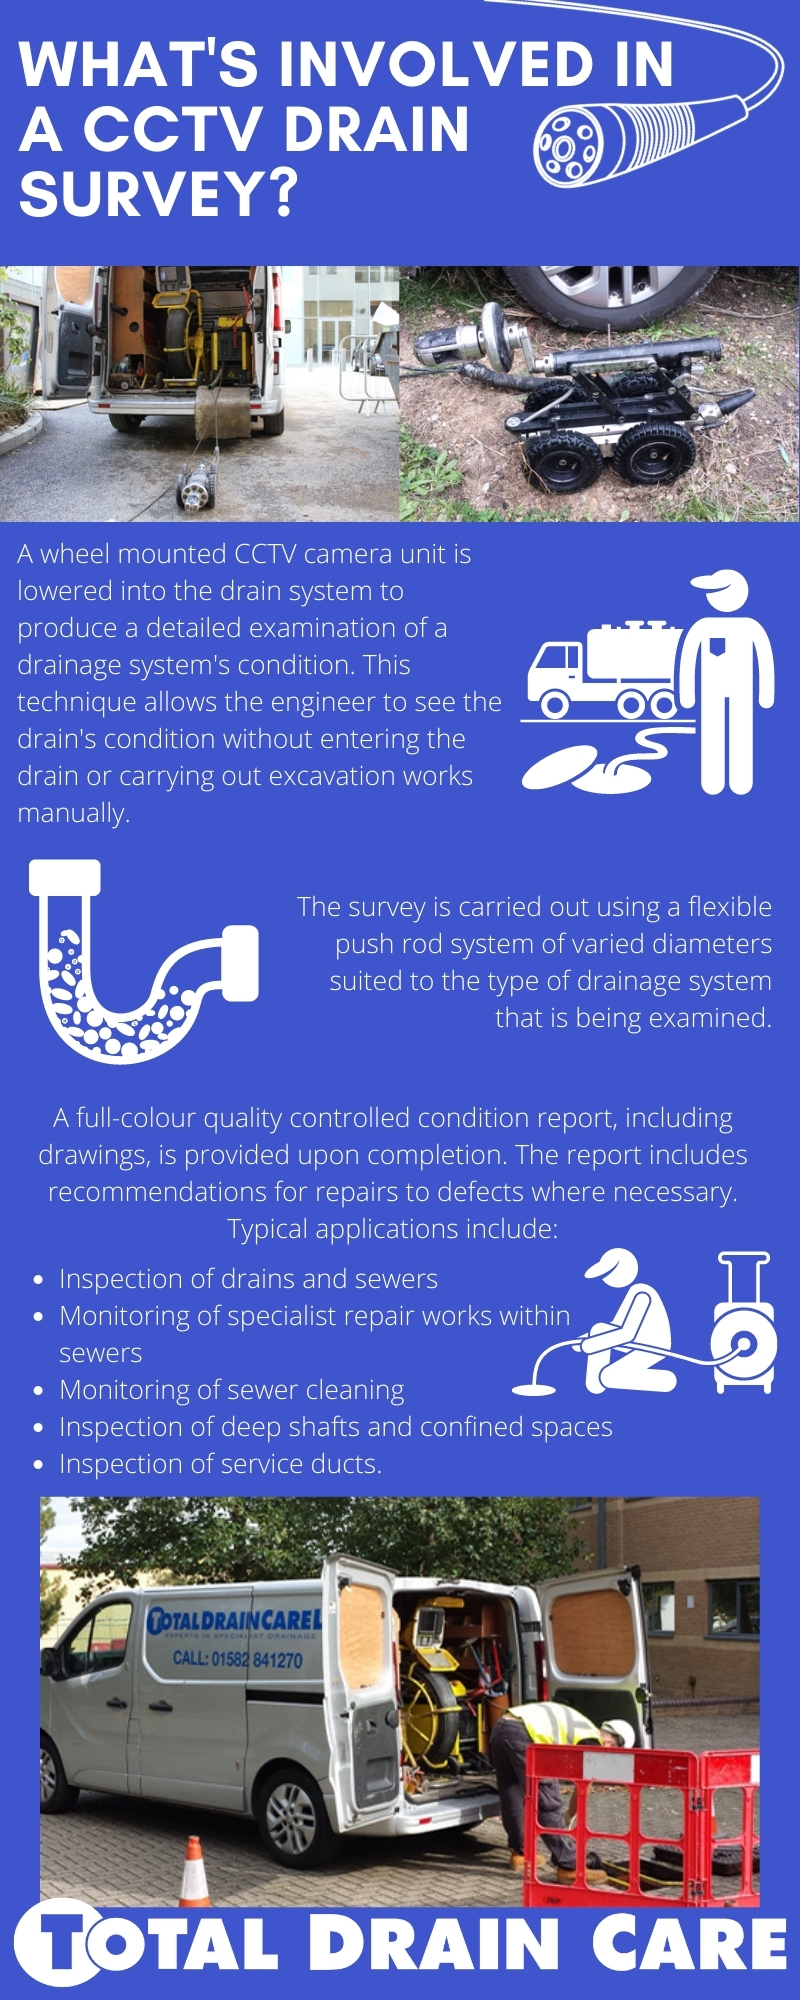 What's involved in a CCTV drain survey?